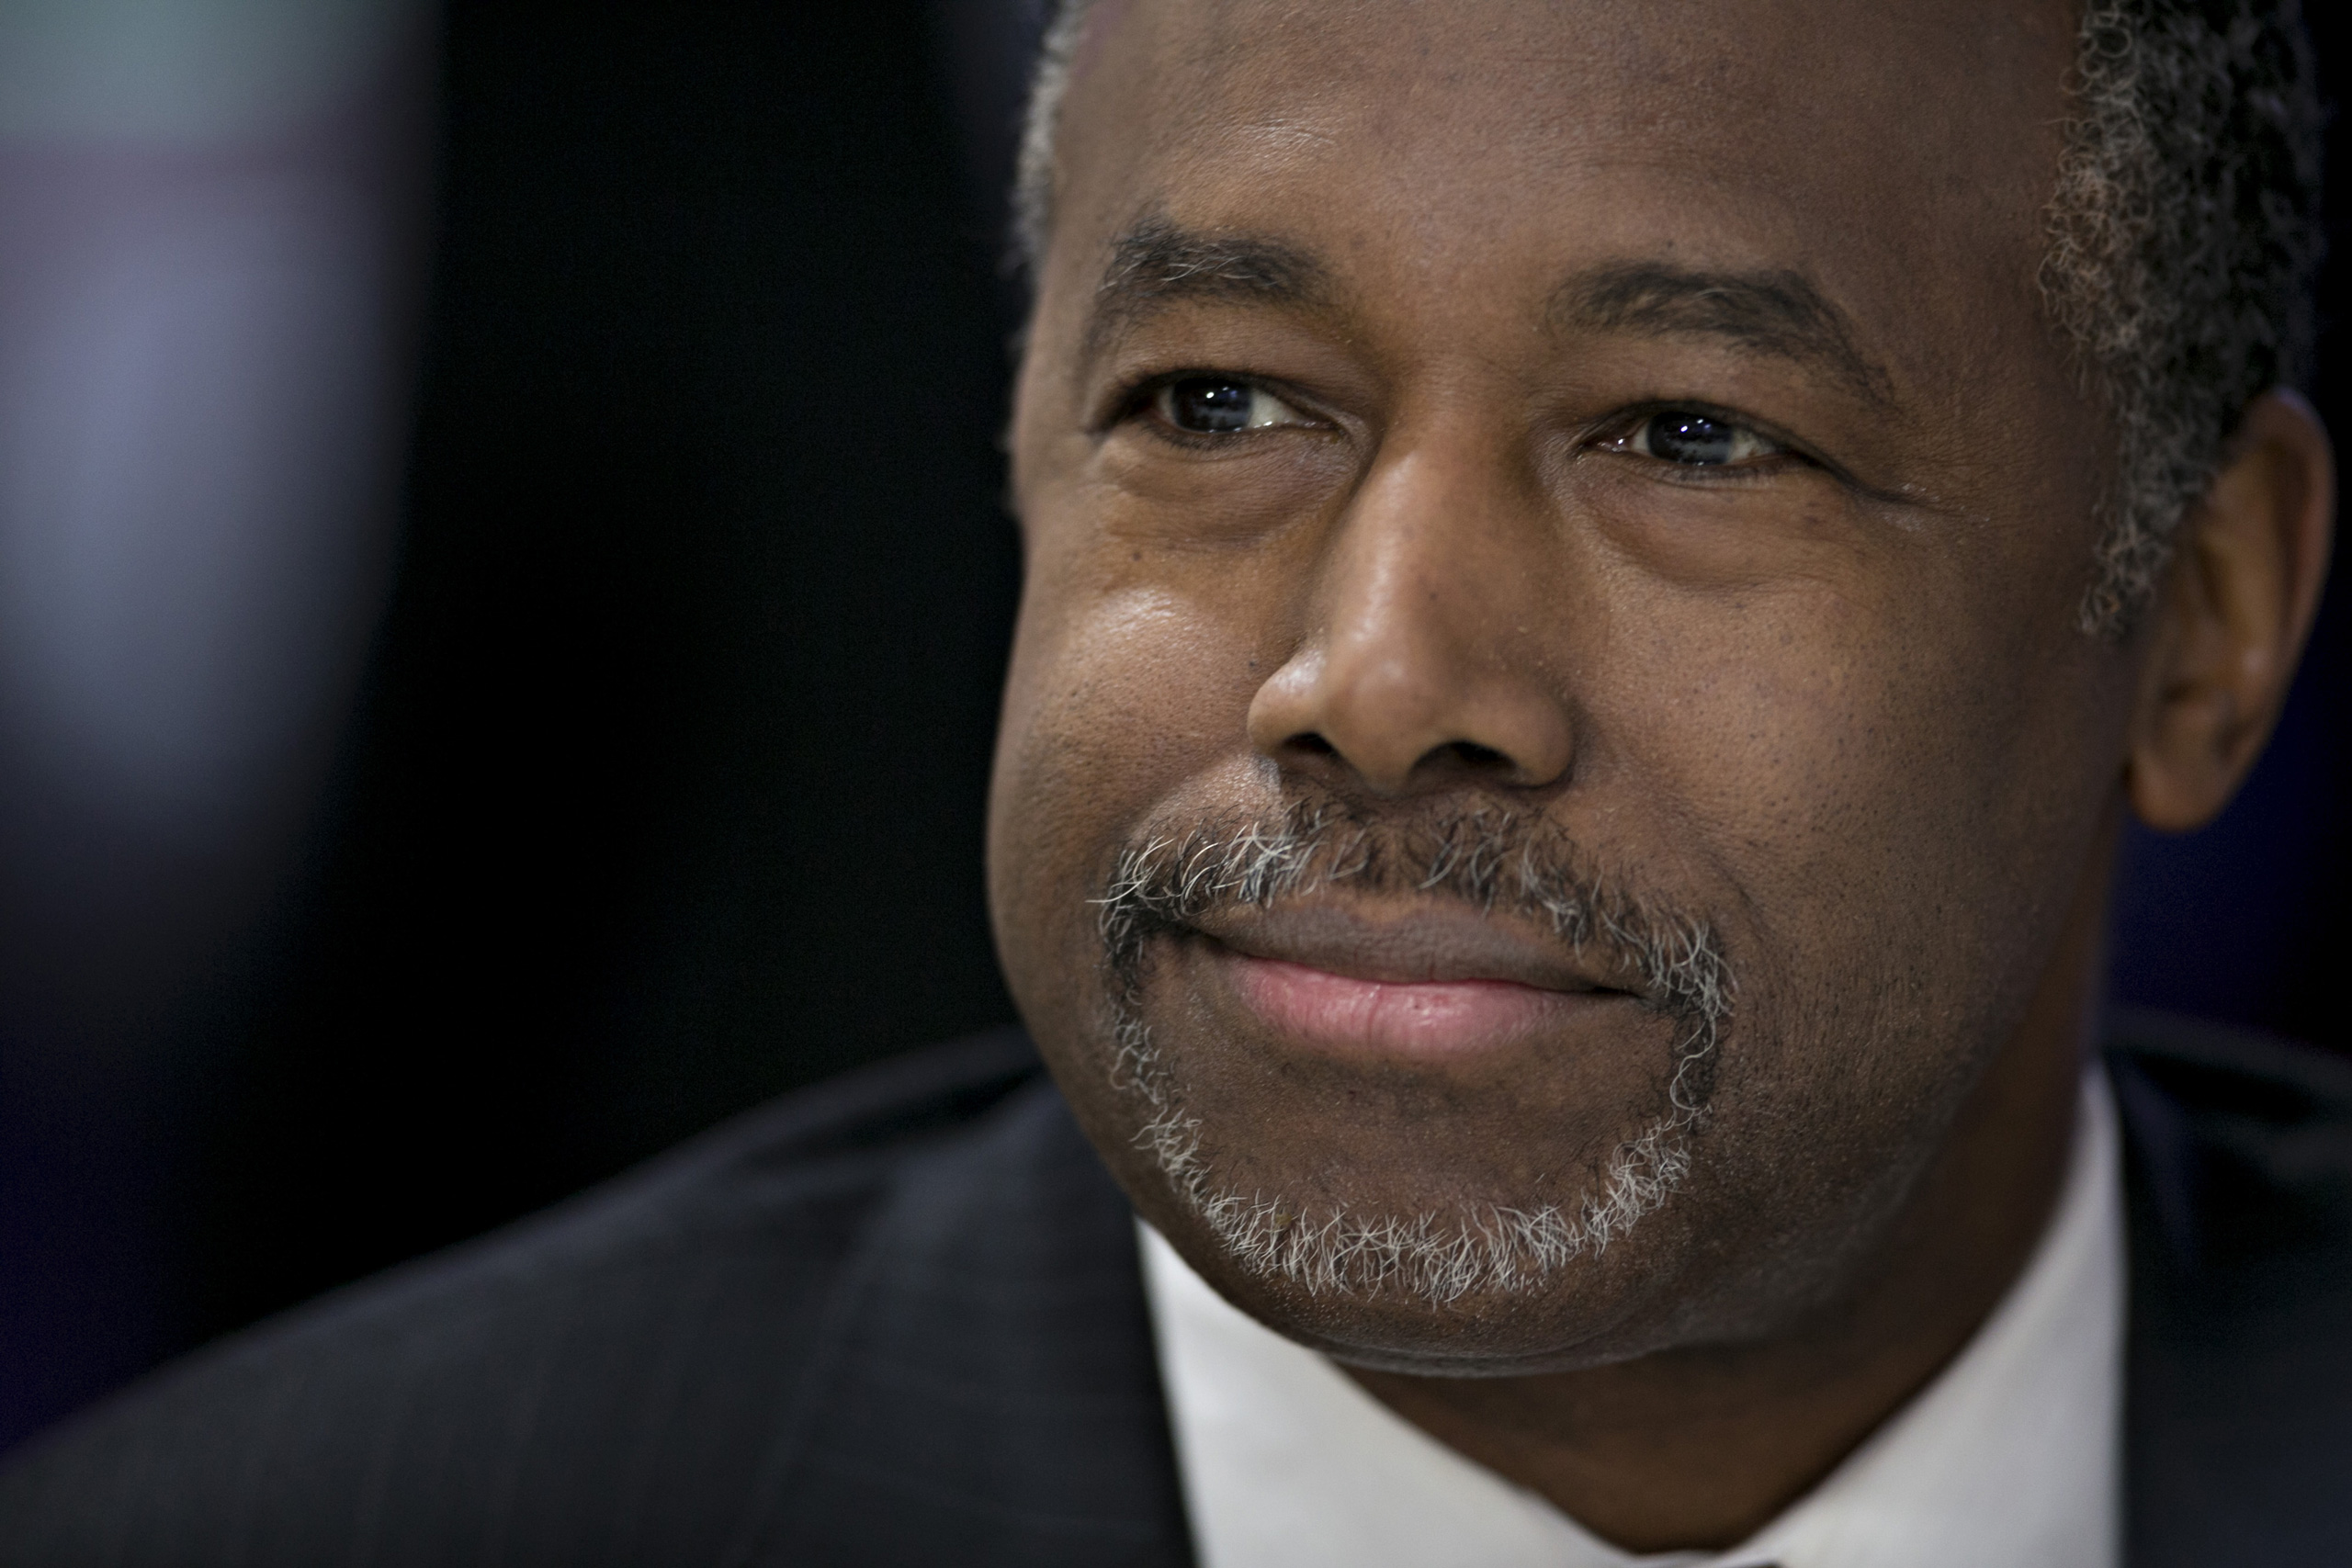 Ben Carson, retired neurosurgeon and 2016 Republican presidential candidate, listens to a question during a Bloomberg Politics interview in Des Moines, Iowa, on Jan. 27, 2016.